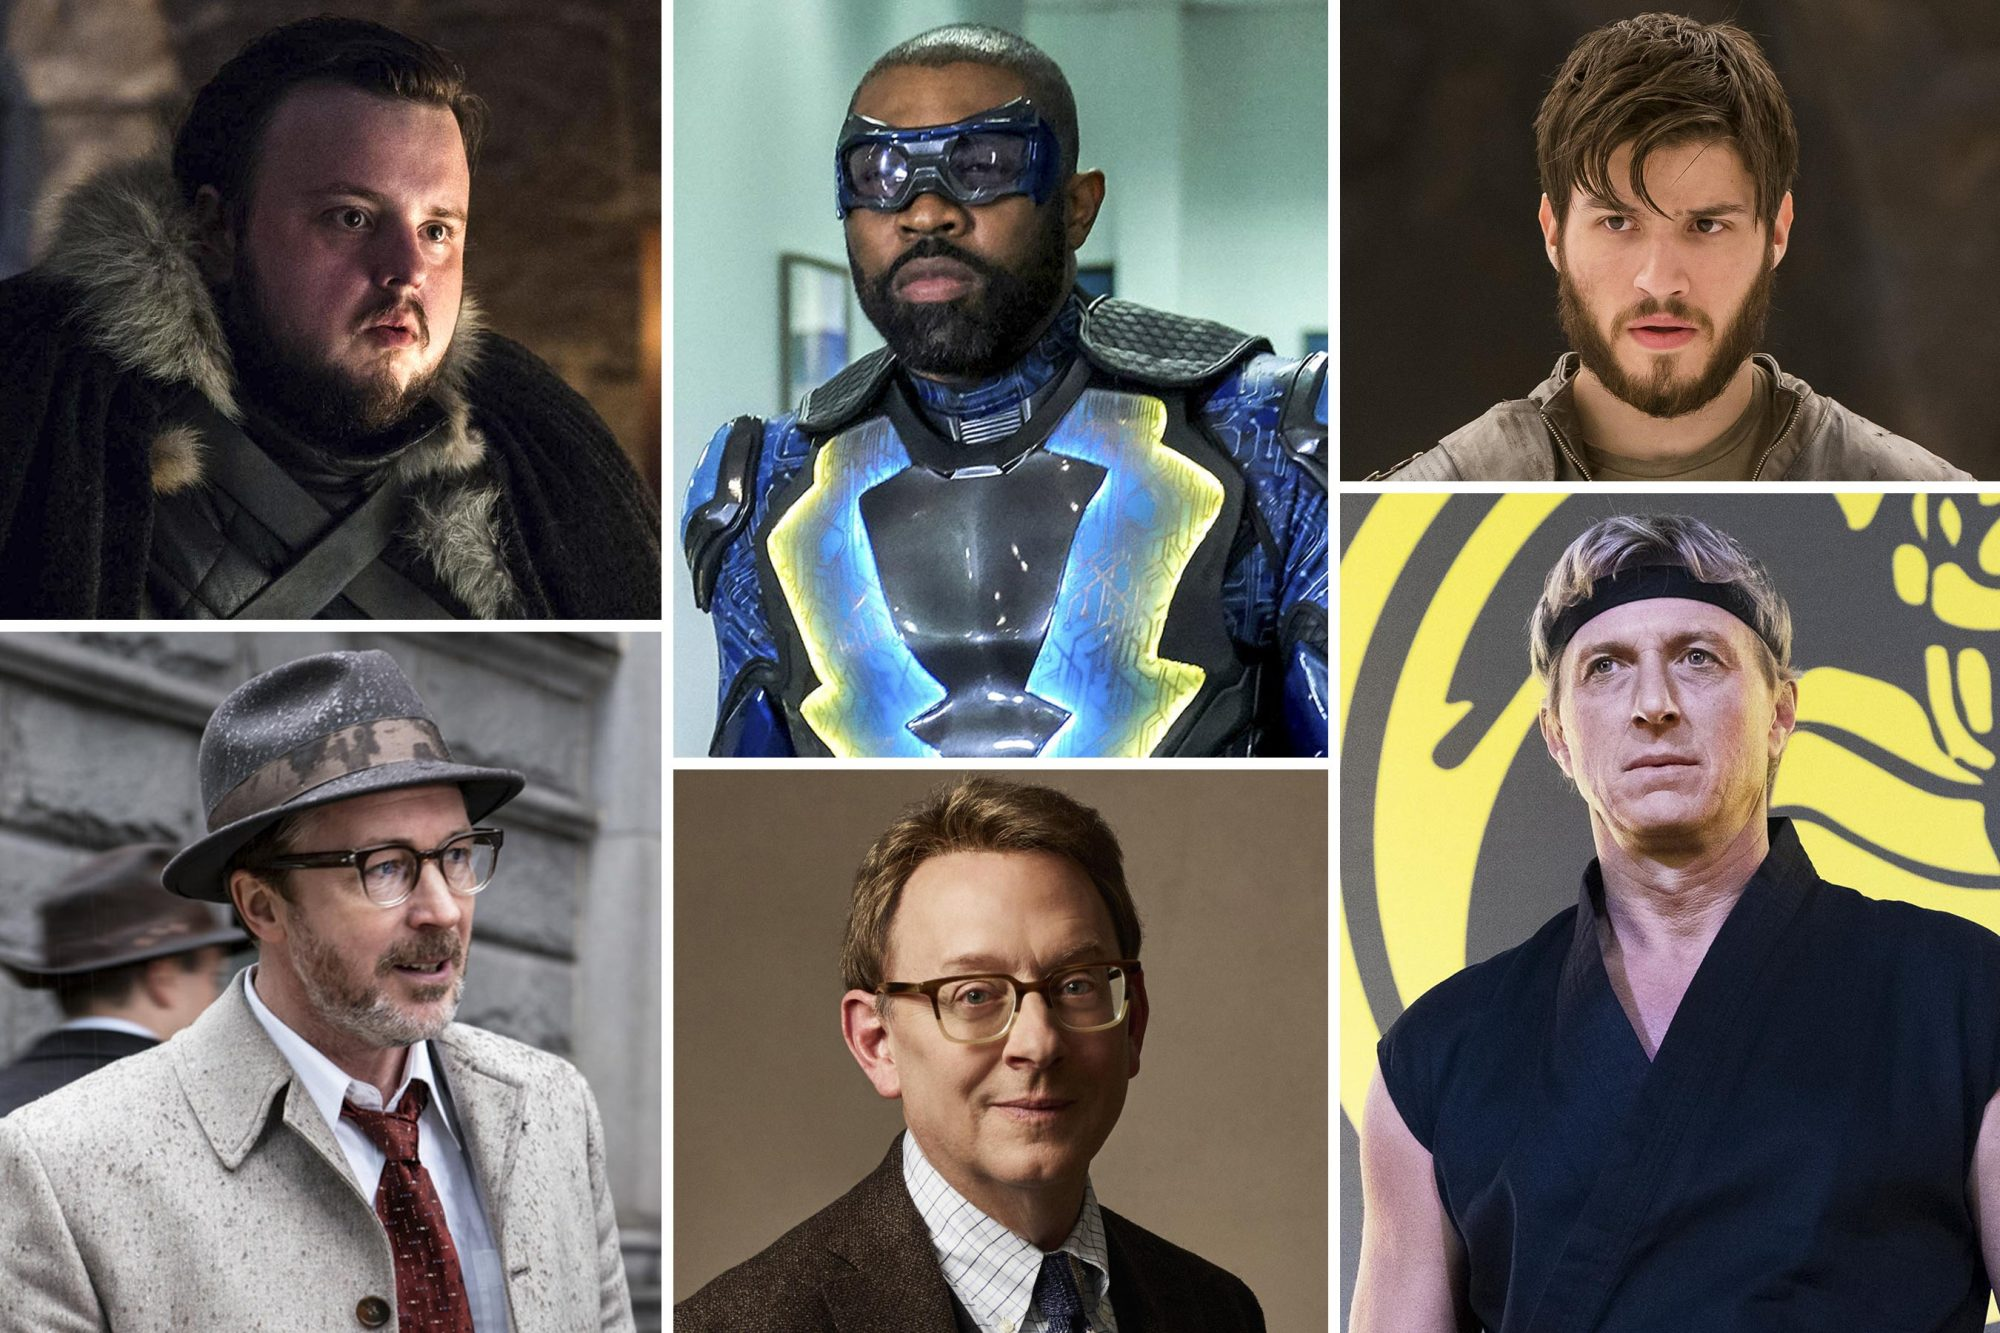 John Bradley (Game of Thrones), Cameron Cuffe (Krypton), Michael Emerson (Evil), Aidan Gillen (Project Blue Book), Cress Williams (Black Lightning), and William Zabka